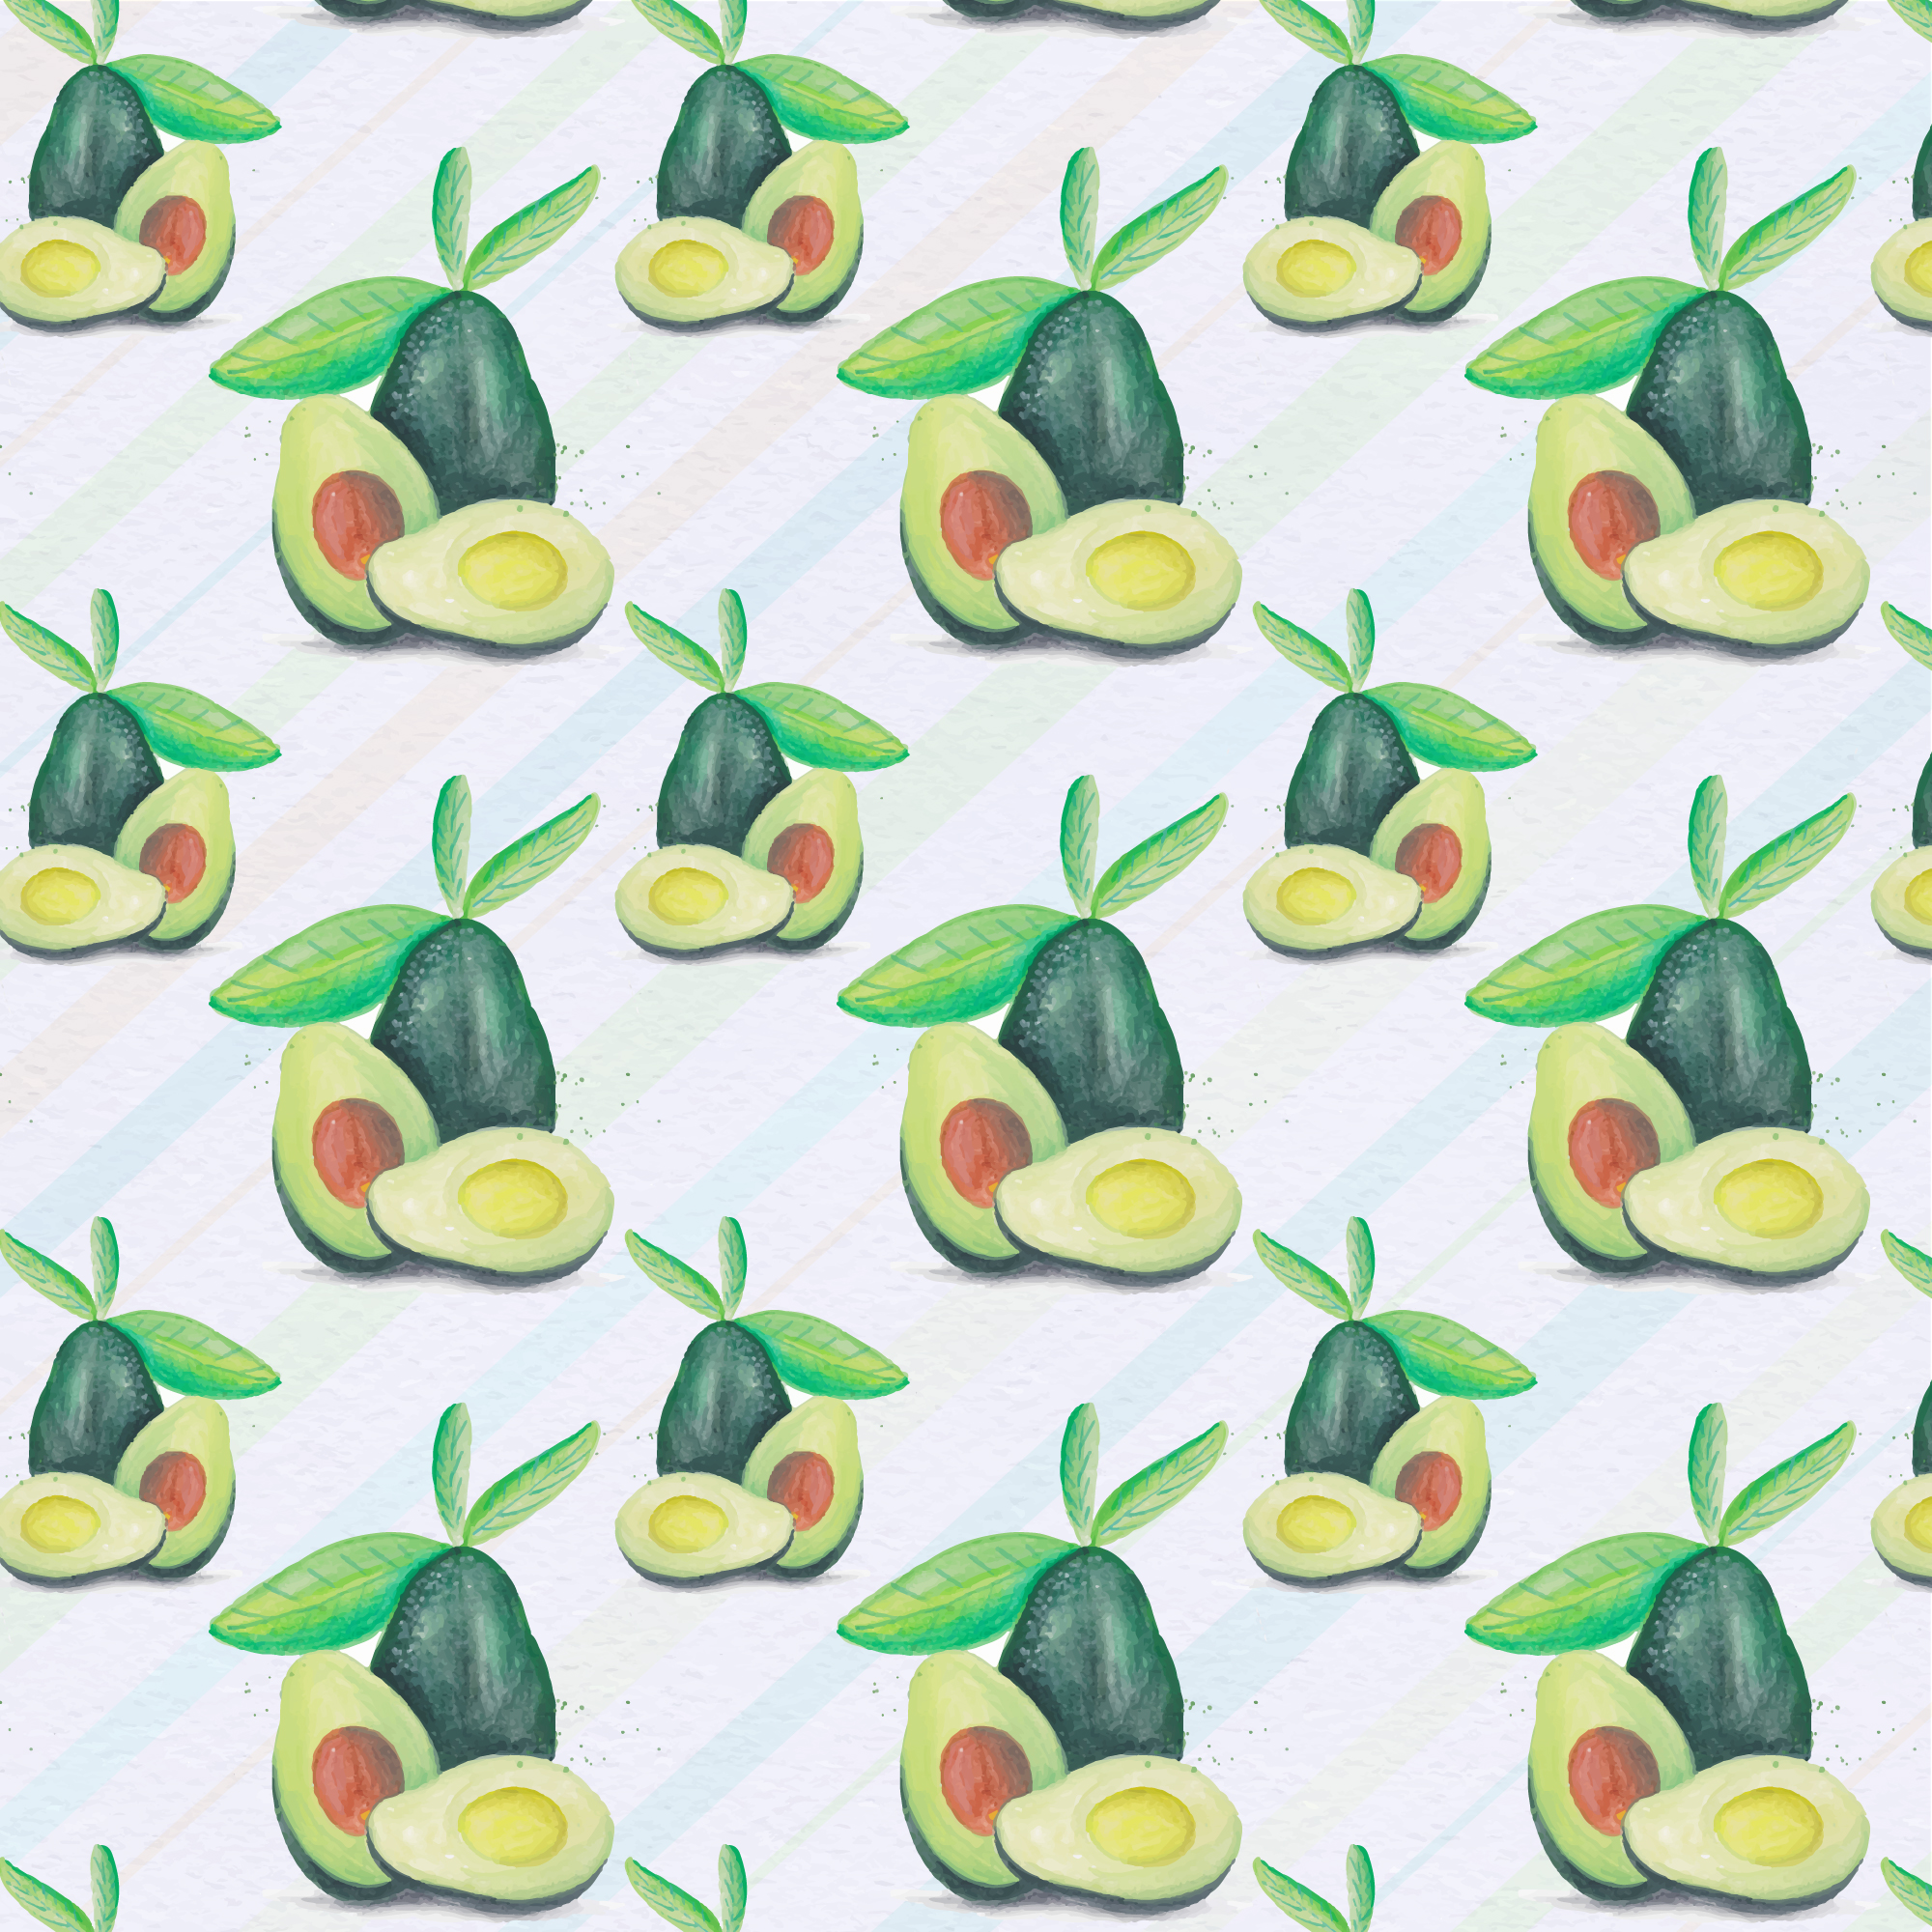 Avocado patroon backgorund